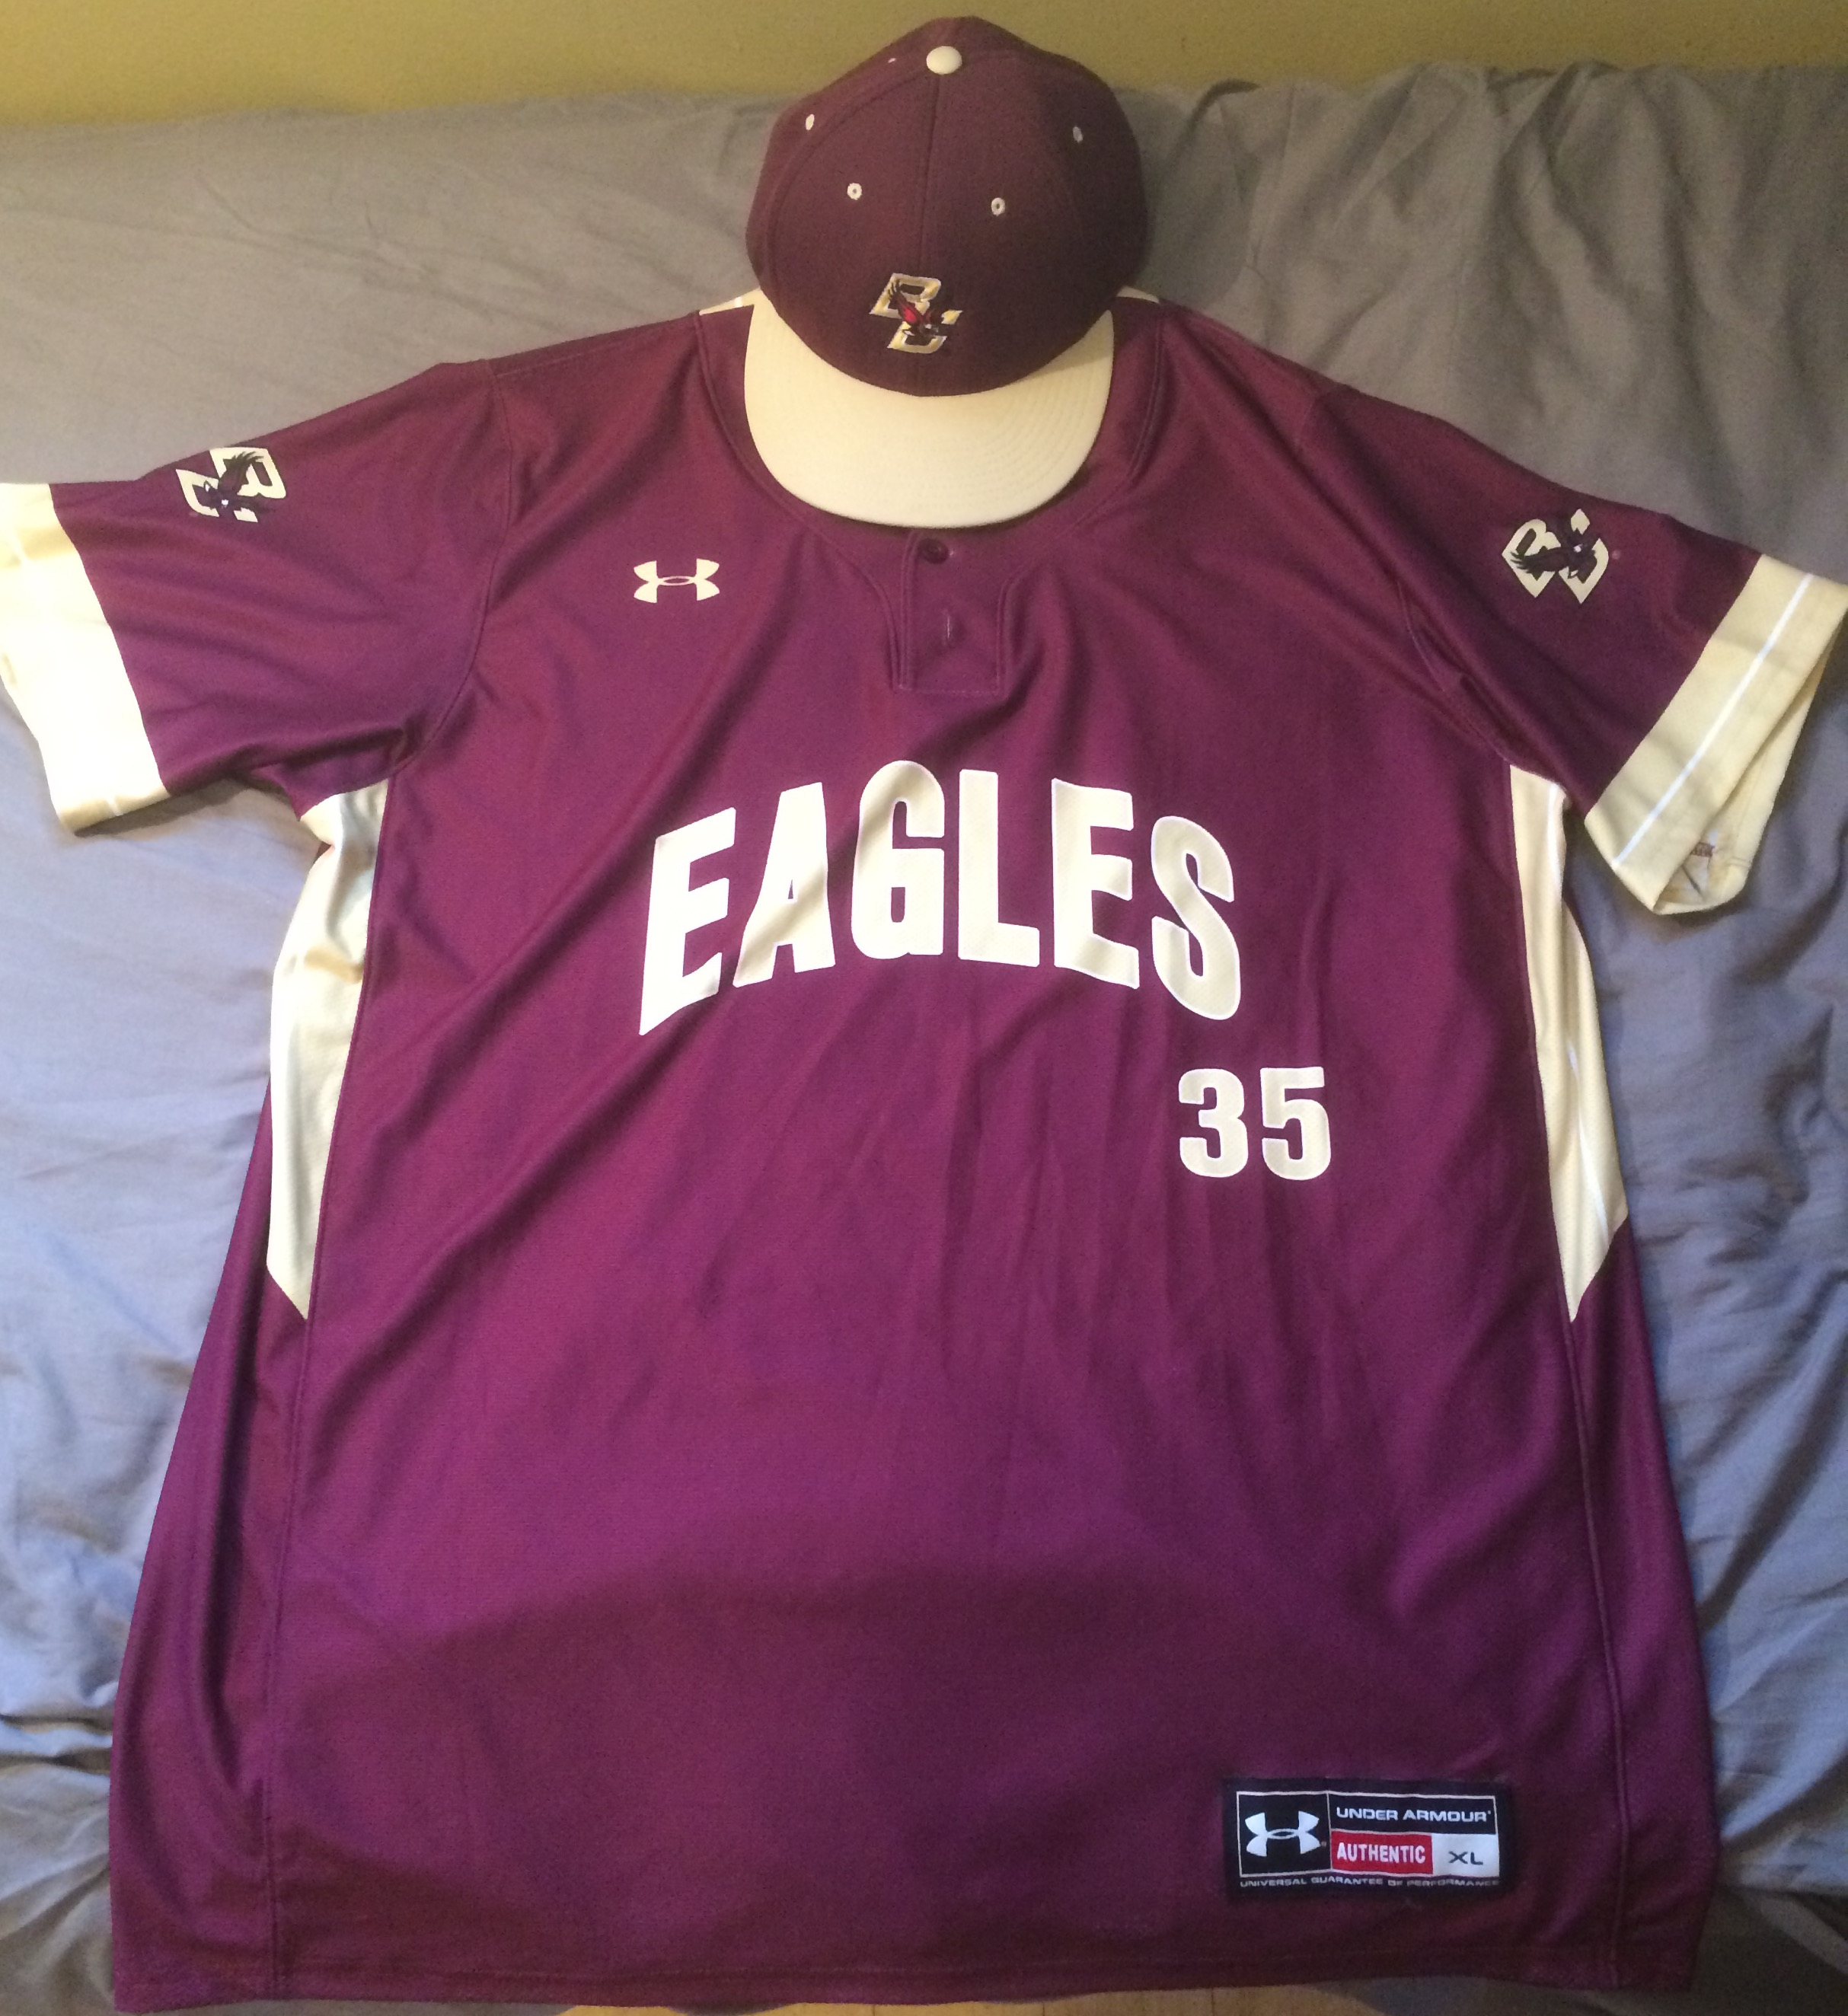 3d713868 Eagles Unveil New Jerseys for Spring Season – Boston College Club ...